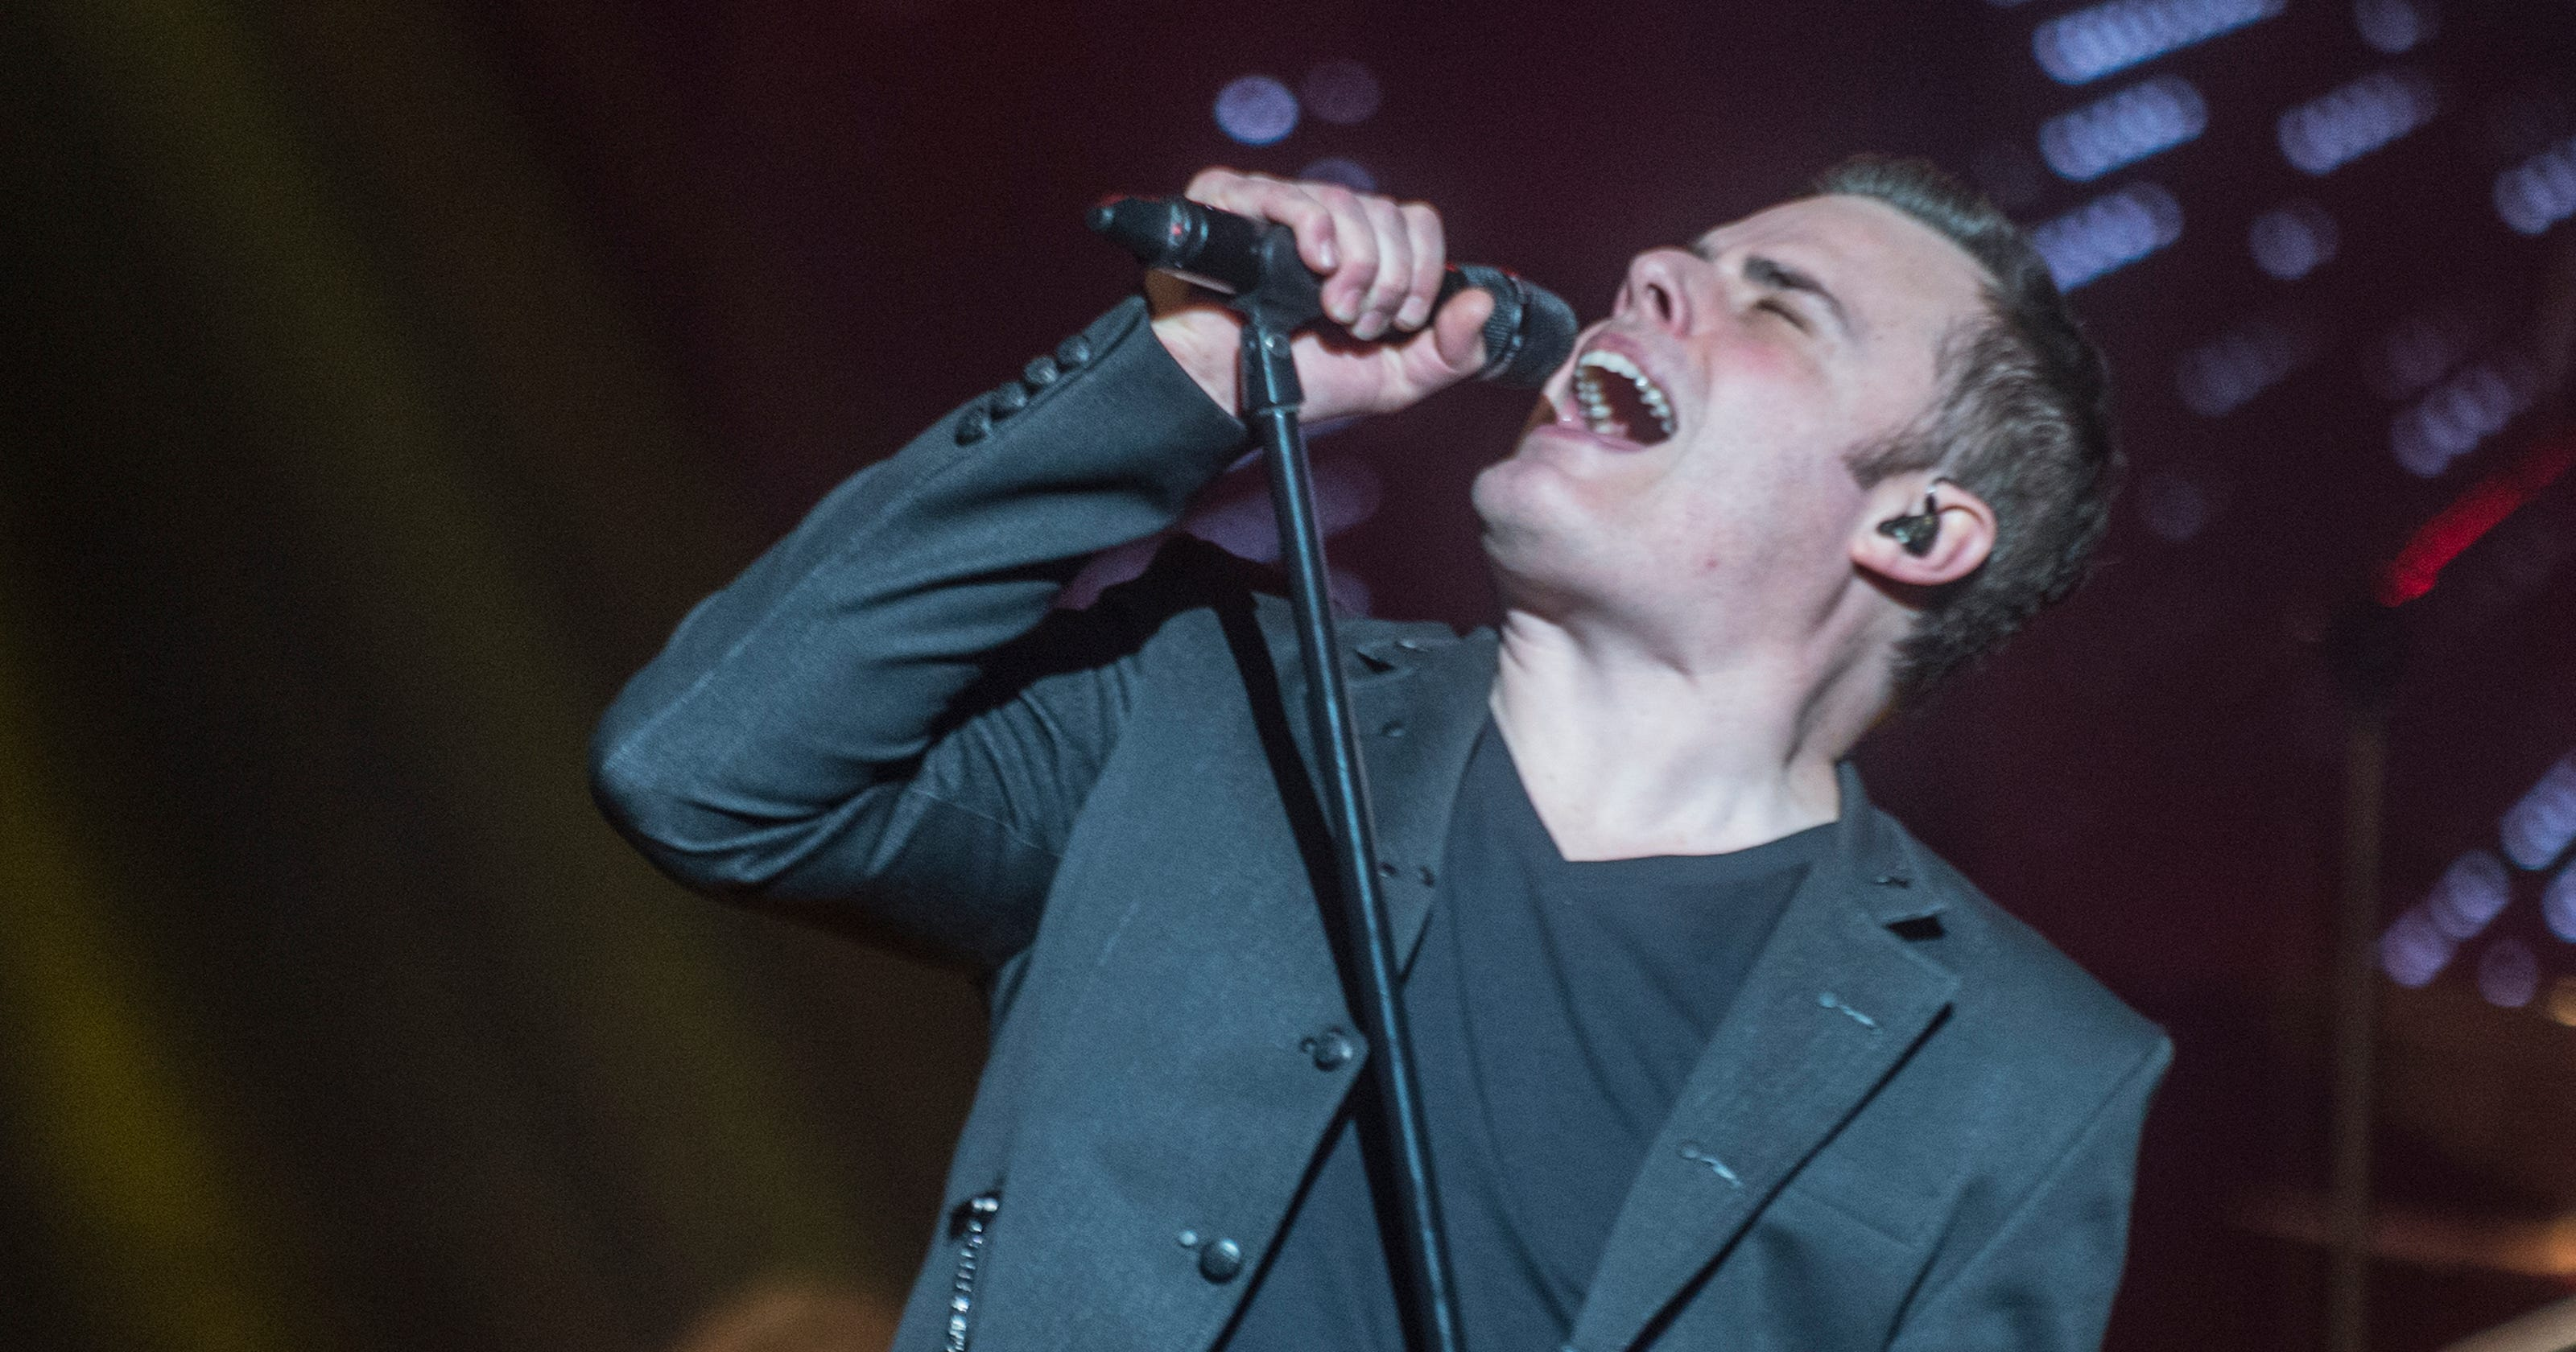 Is this the real life? It is for Marc Martel, performing